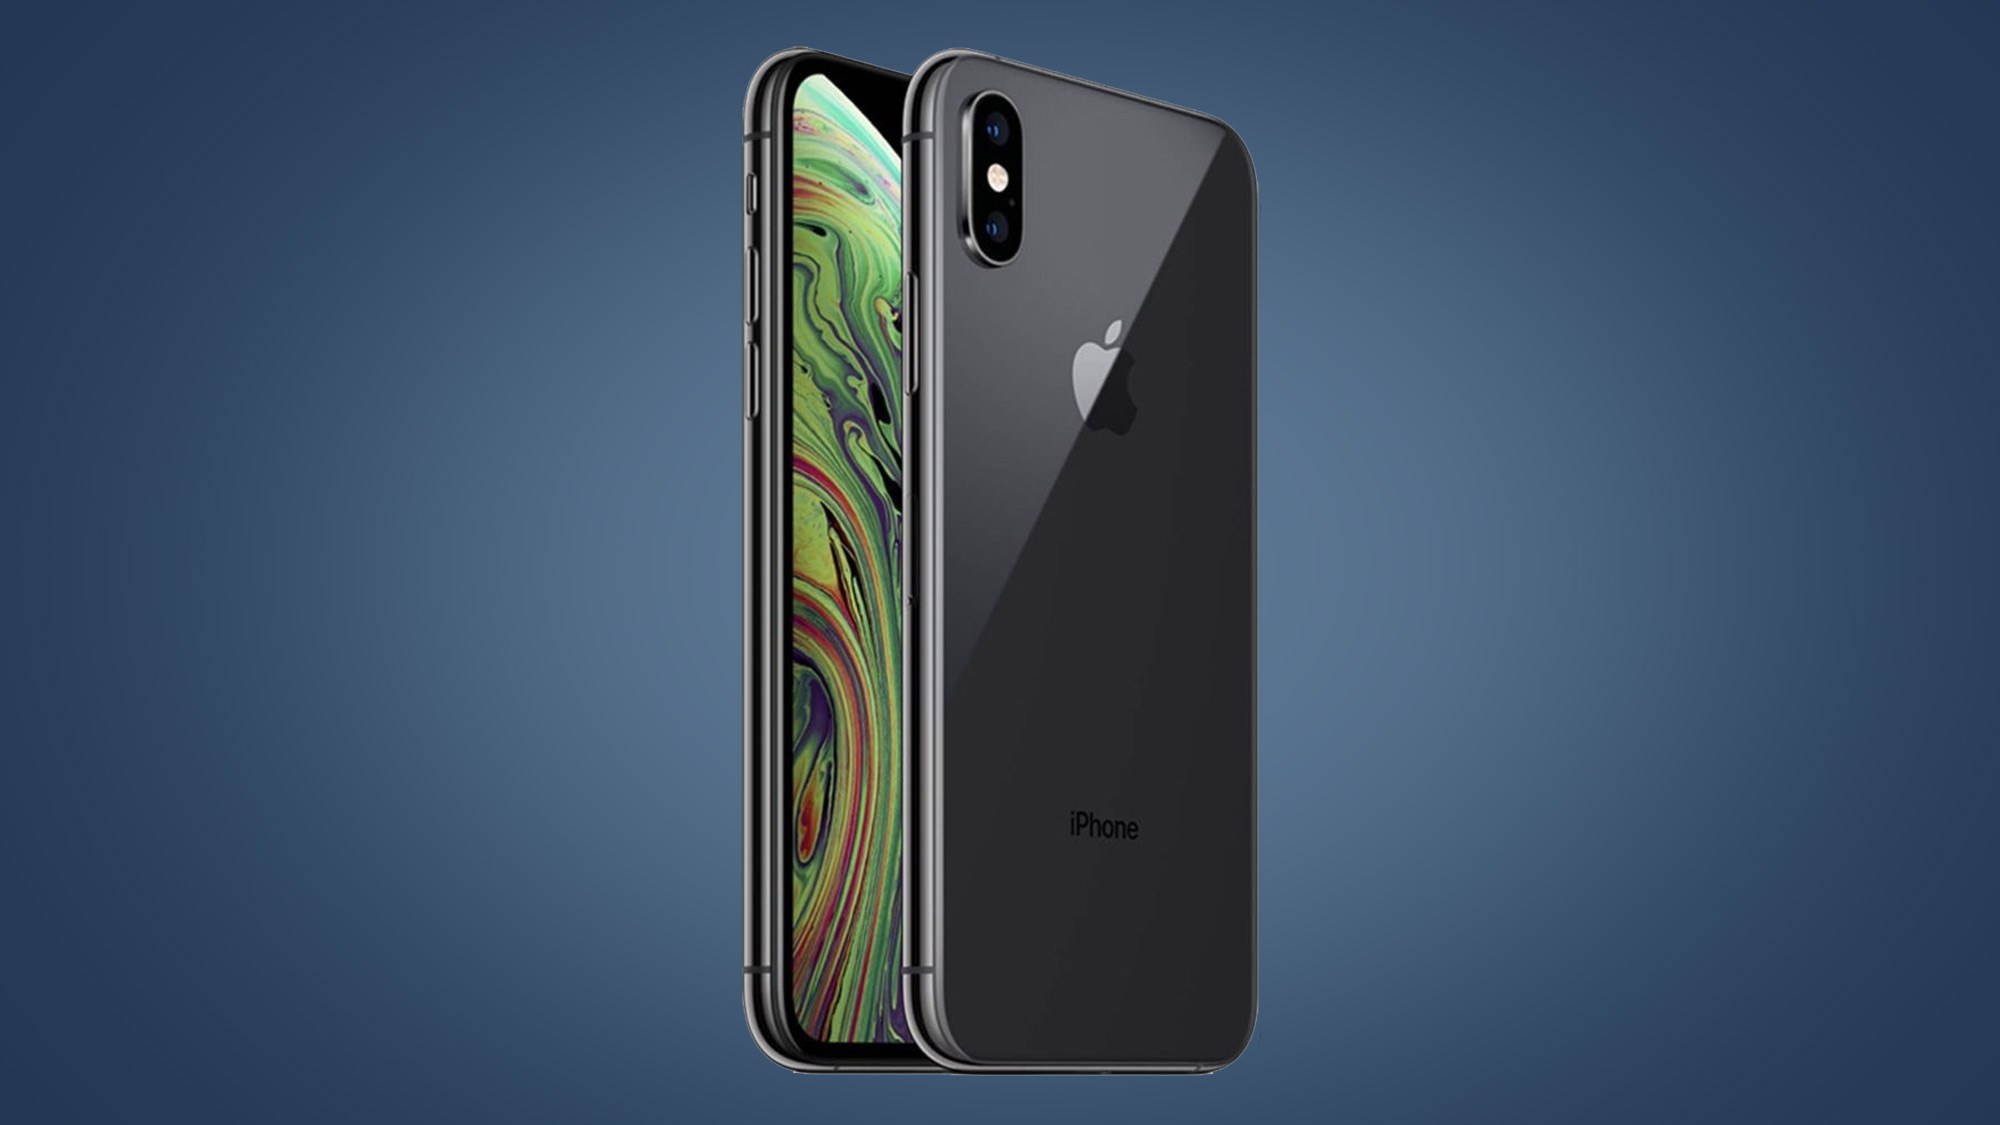 iPhone XS deals don't get better than this - 100GB of data at an